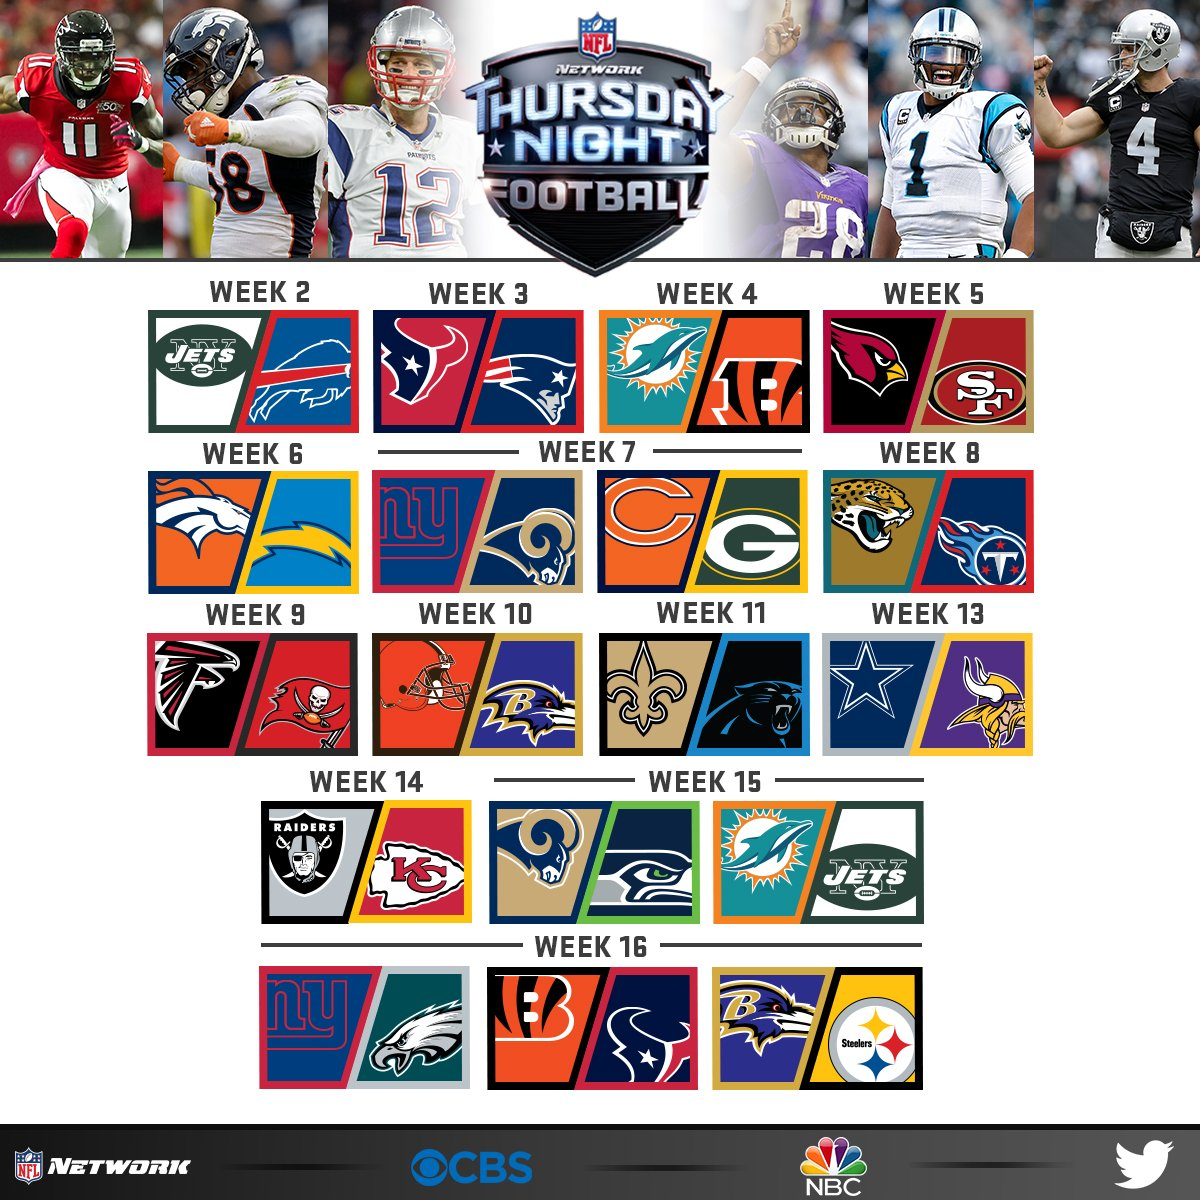 footbal schedule thursday night football schedule tonight